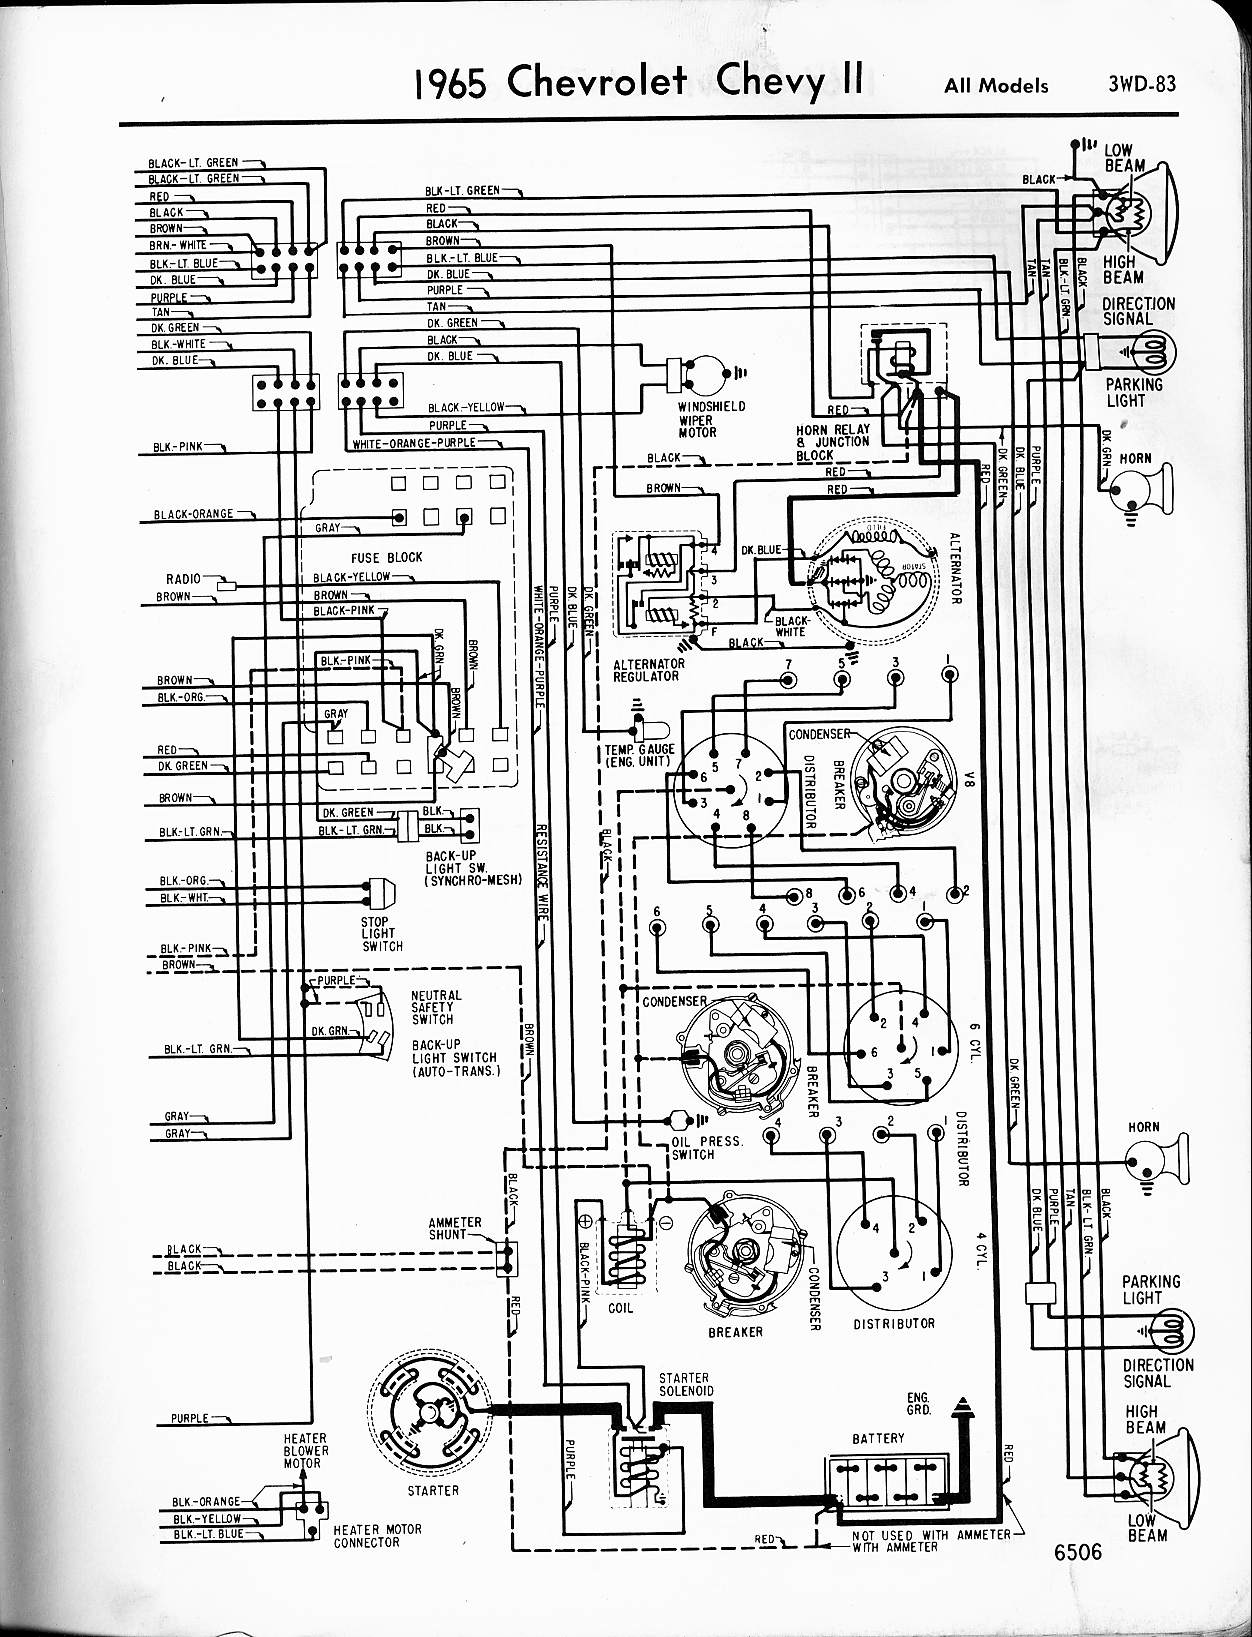 MWireChev65_3WD 083 chevy diagrams 5 Wire Ignition Switch Wiring Diagram at soozxer.org